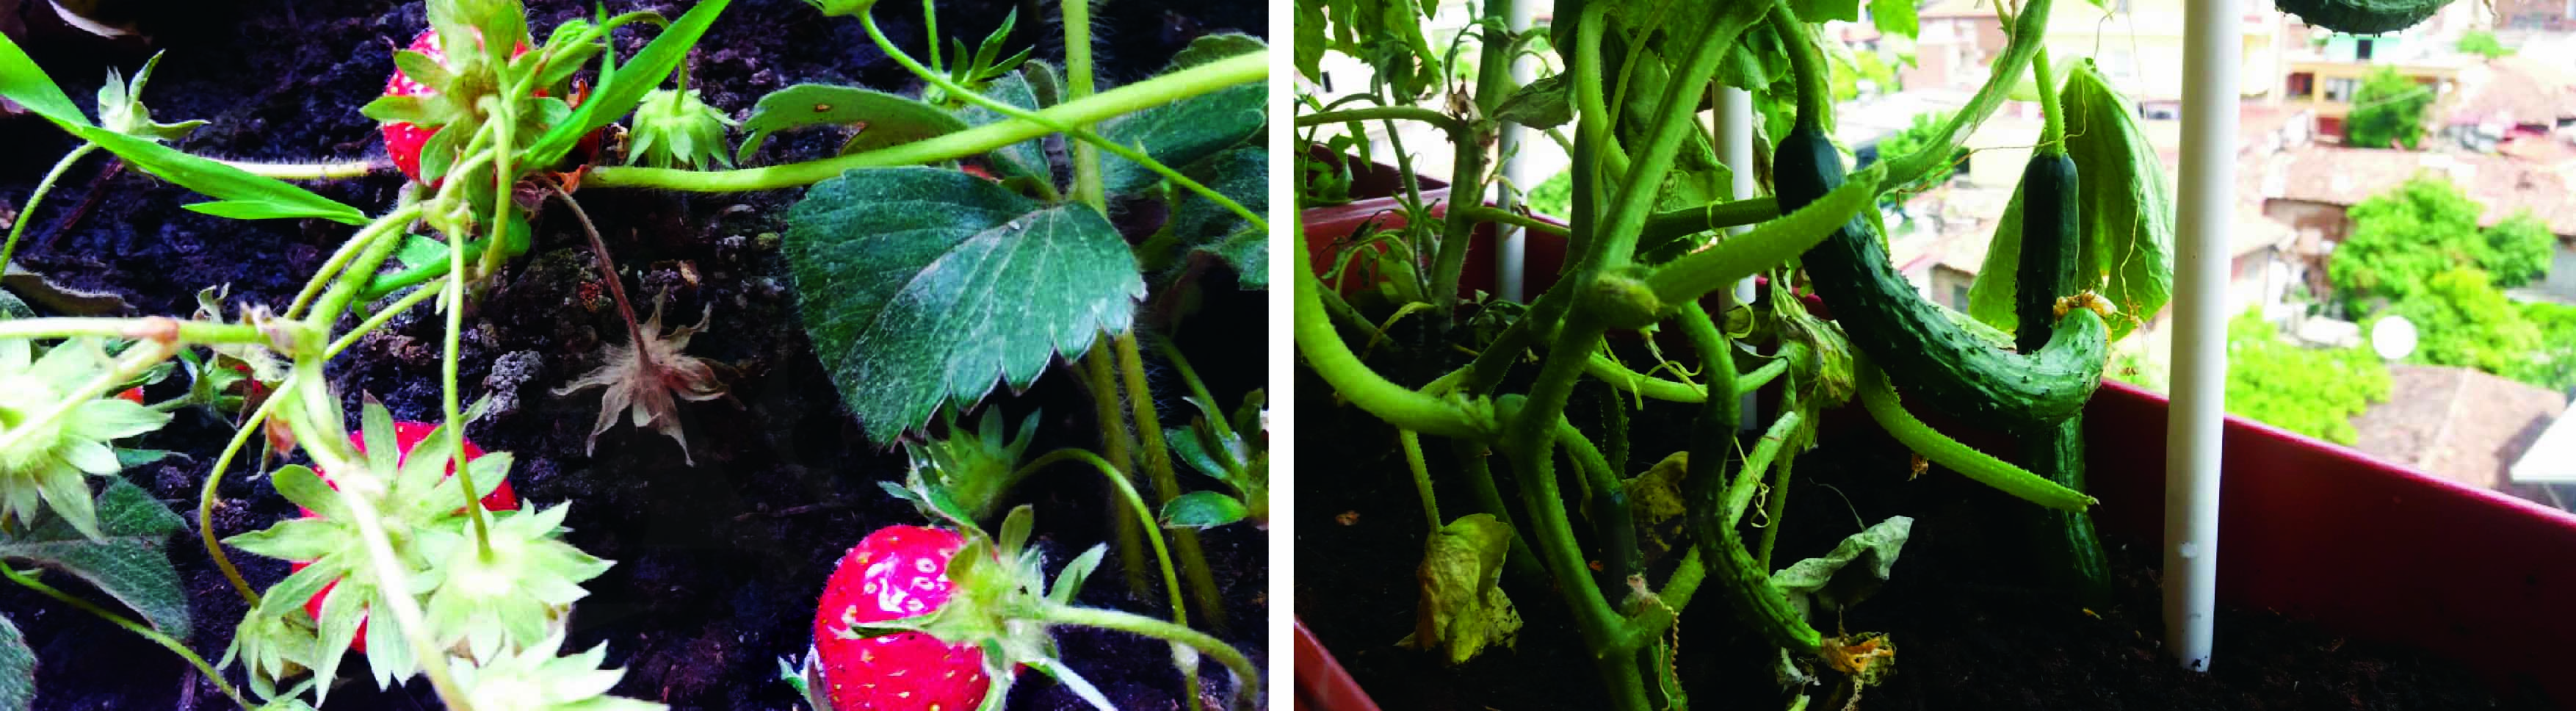 Strawberries and cucumbers planted in Rezarta's balcony